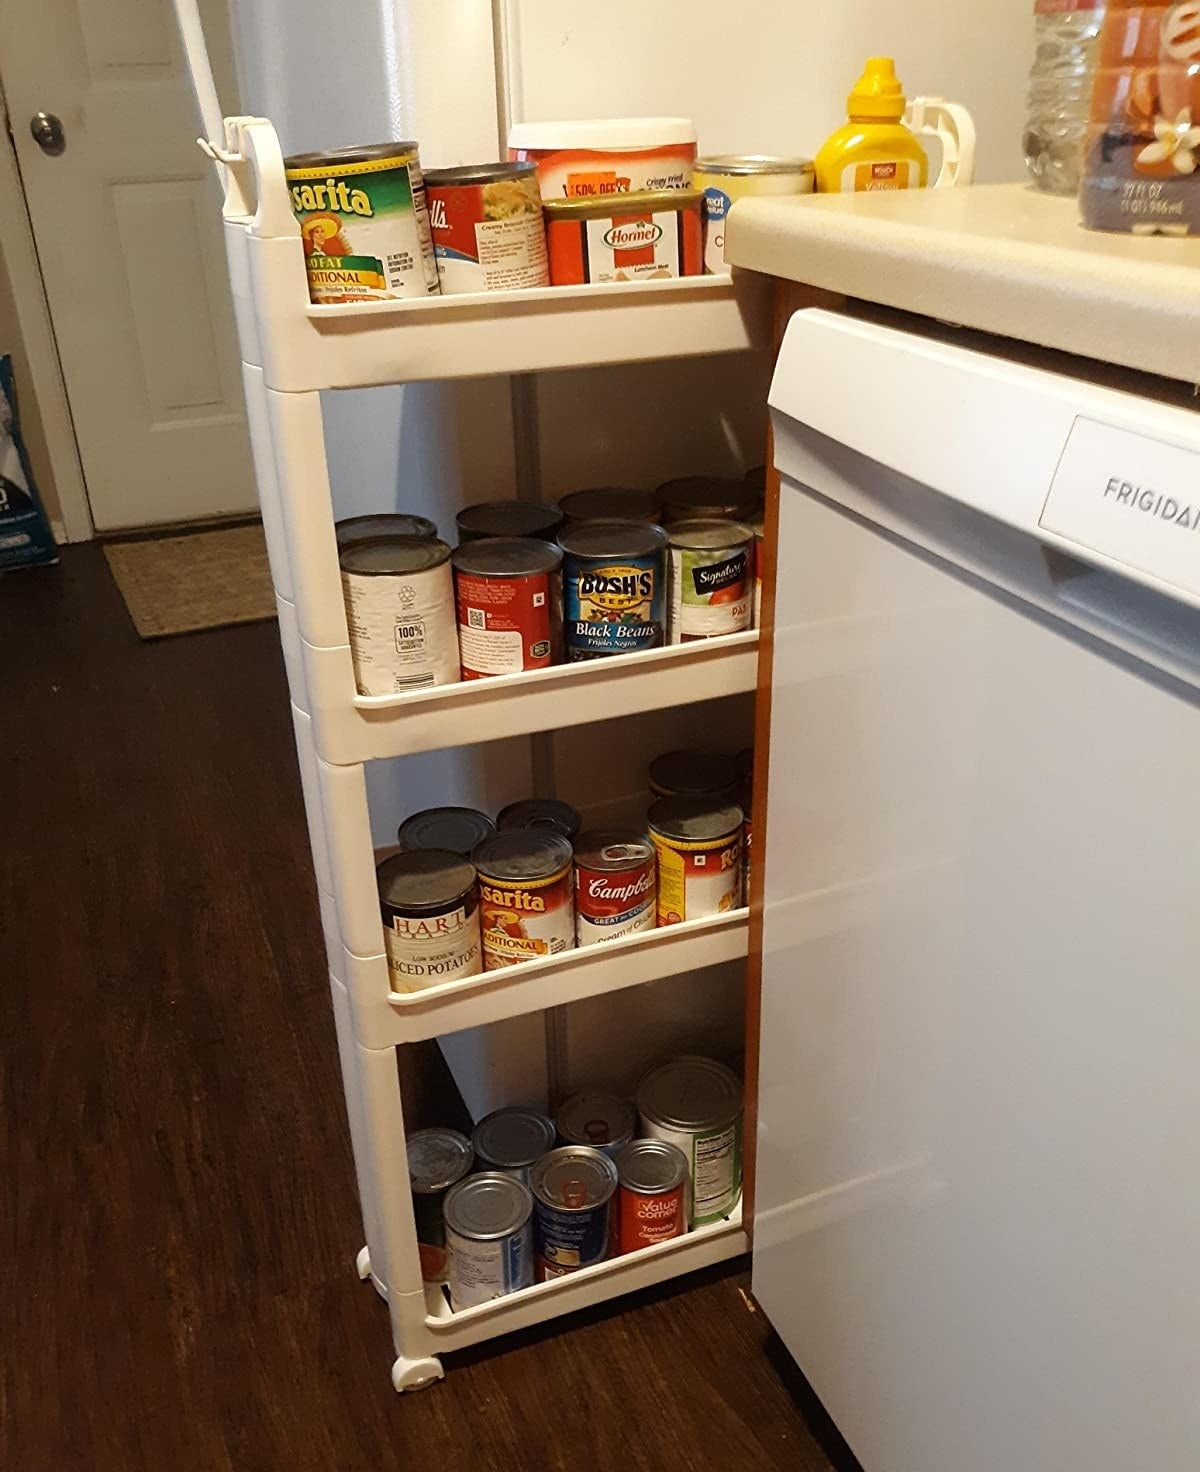 Reviewer image of the rack, which holds cans and other items on shelves that are slightly covered on the edges so that the cans cannot fall off easily